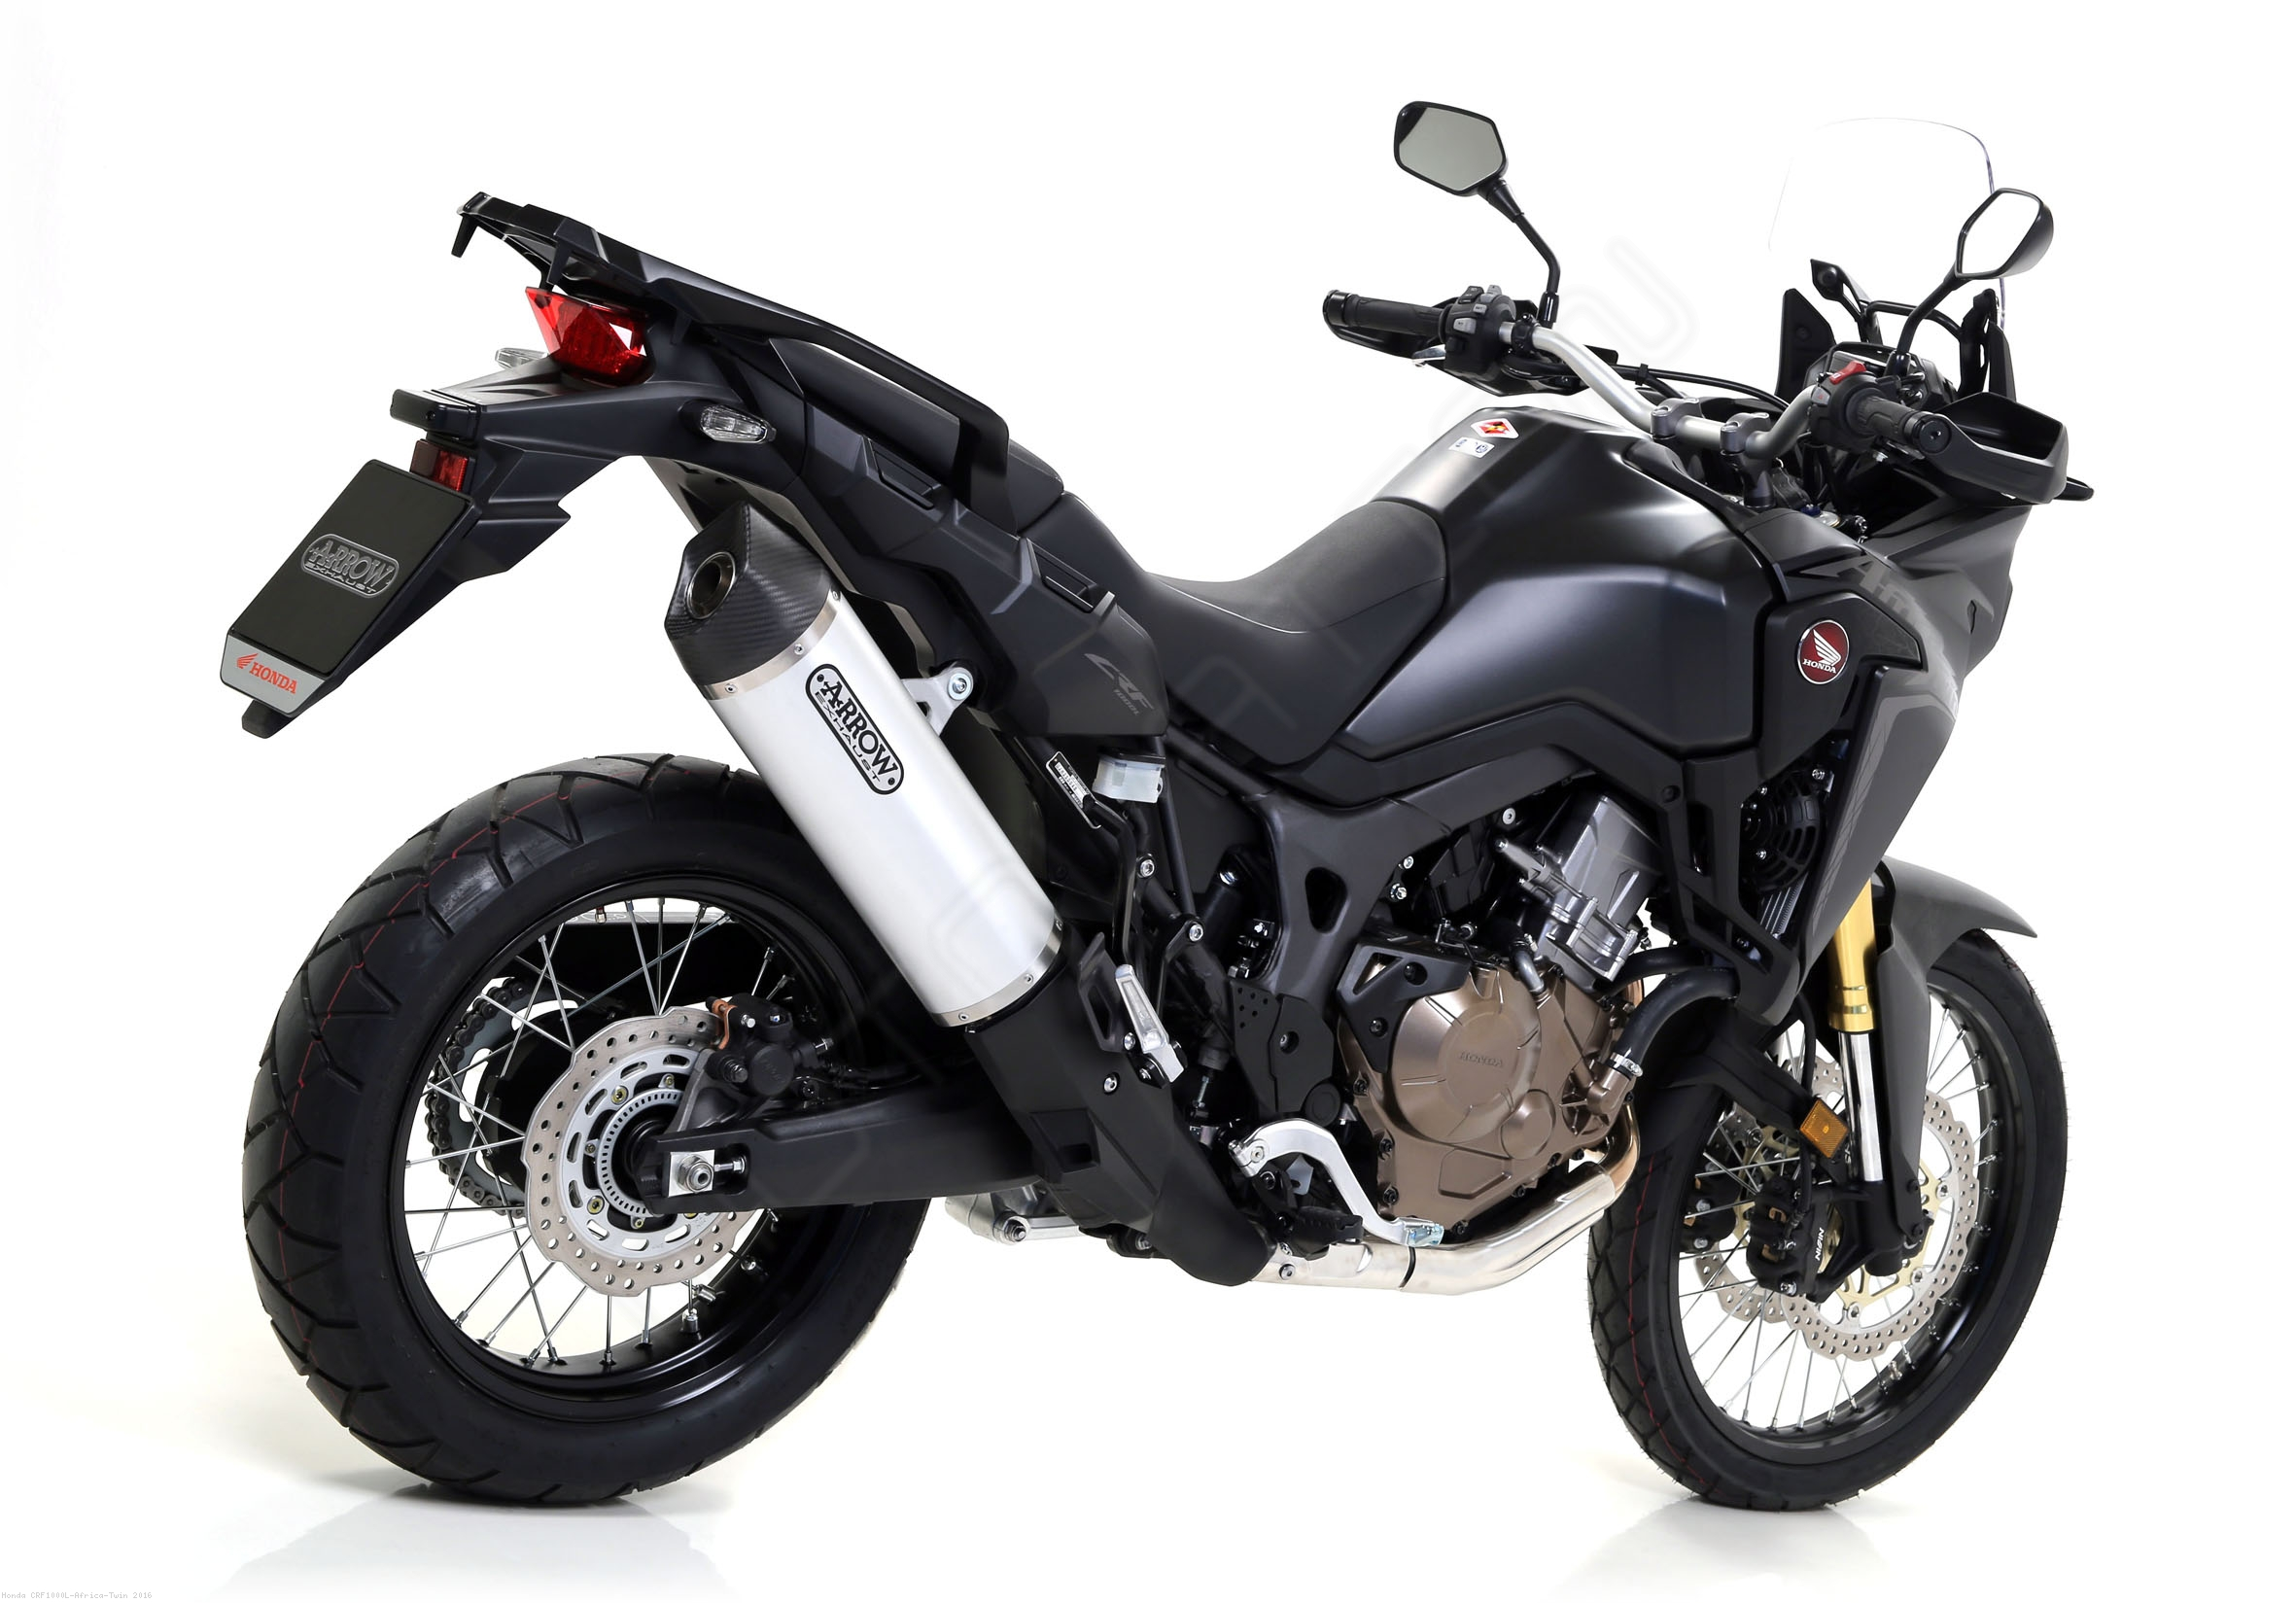 race tech exhaust by arrow honda crf1000l africa twin. Black Bedroom Furniture Sets. Home Design Ideas